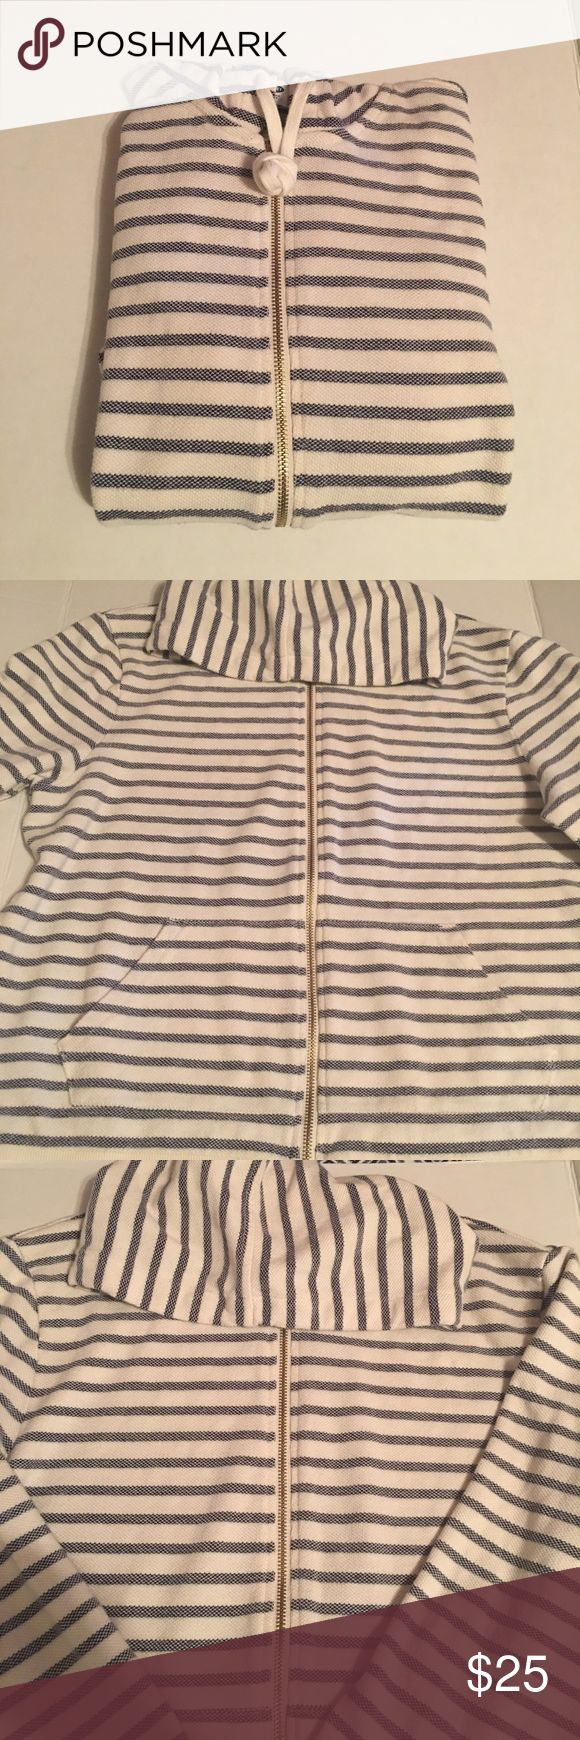 NWOT Old Navy White and Blue Striped Zip Up Size X- Large Cotton Blend Zip Up Hoodie Old Navy Sweaters